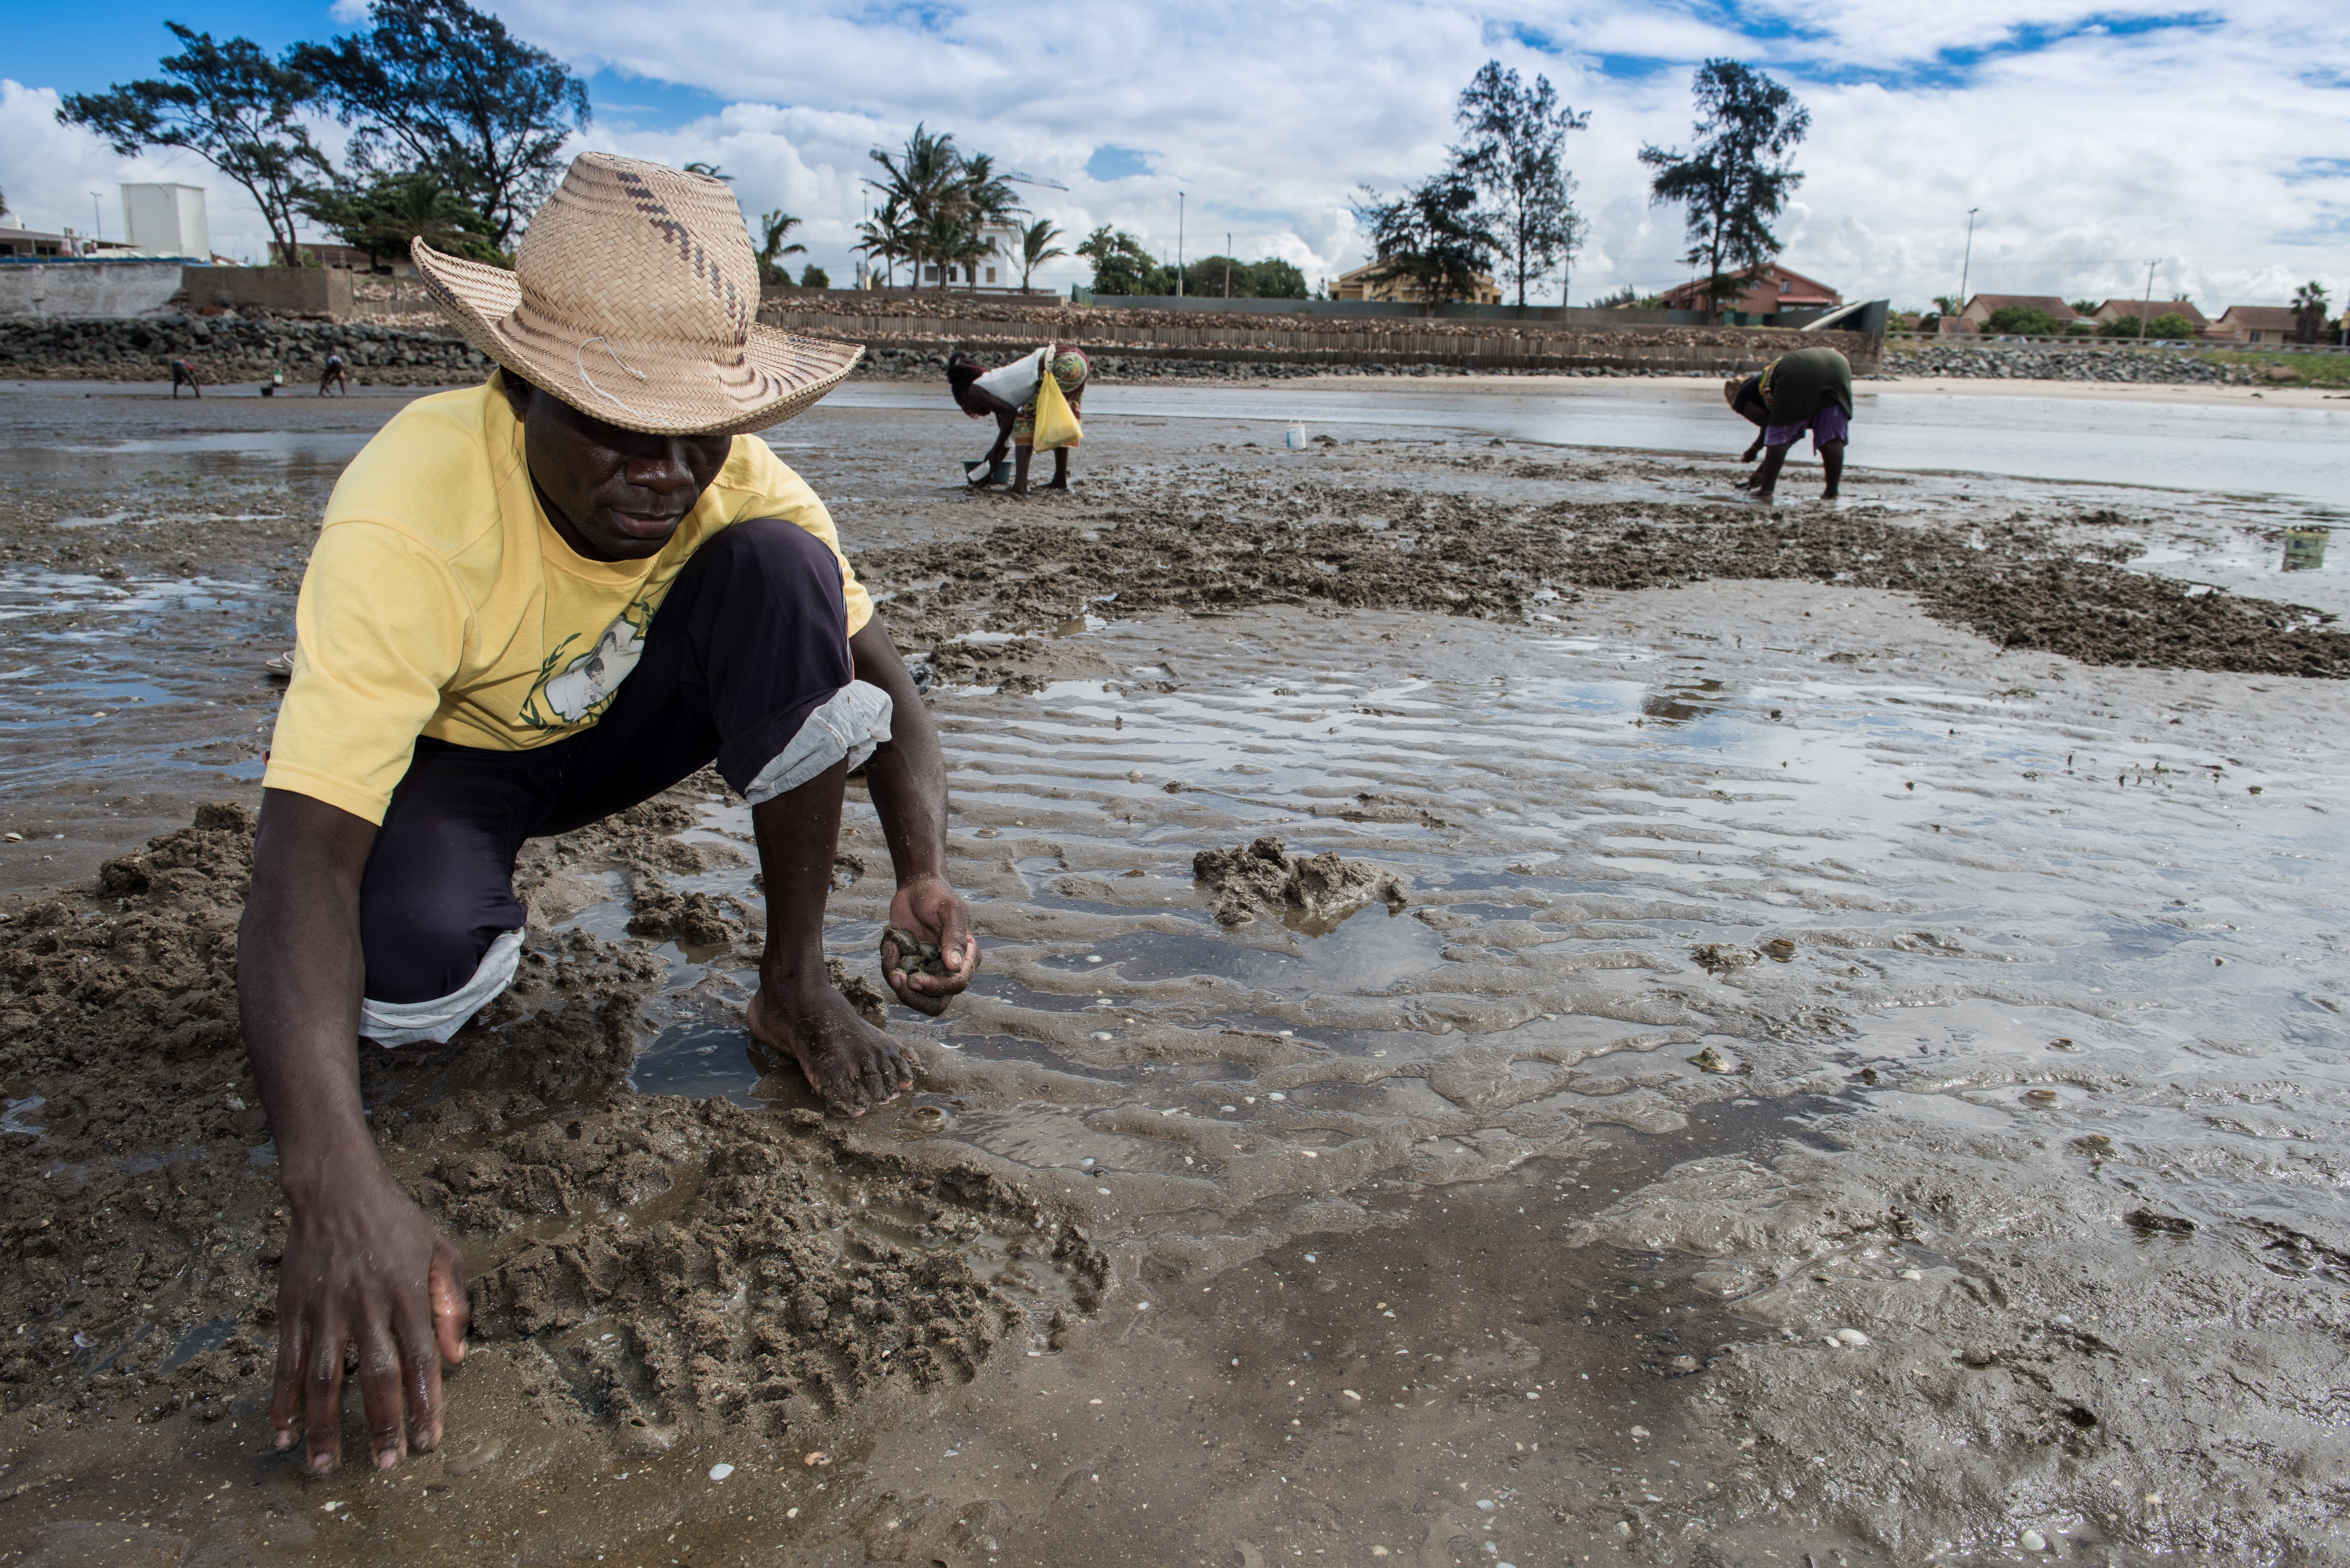 Clam pickers at low tide in the Mozambique capital of Maputo